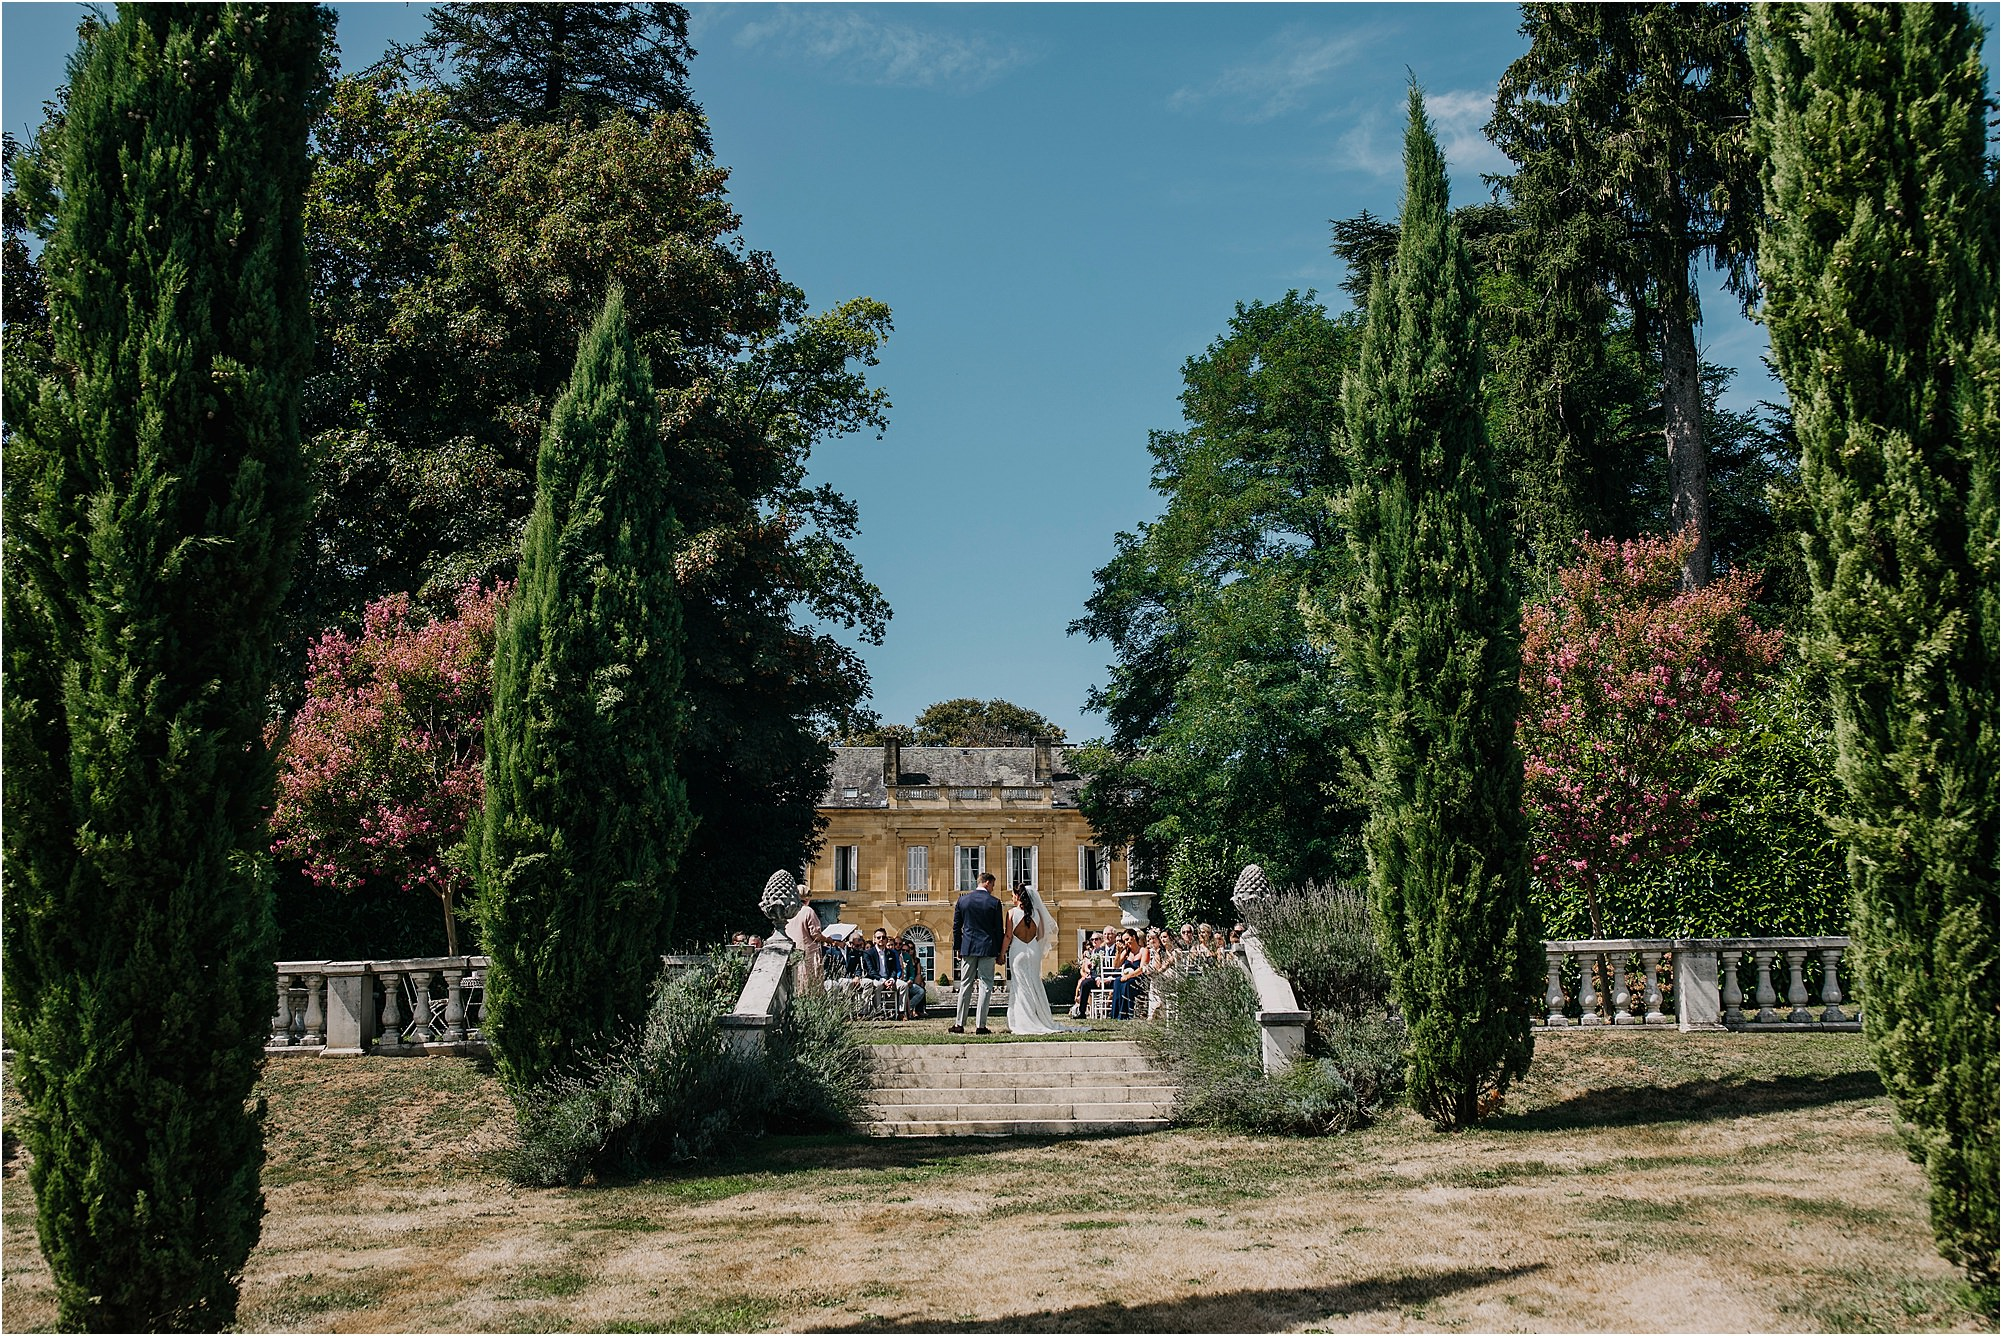 looking towards the house during an outdoor chateau la durantie wedding